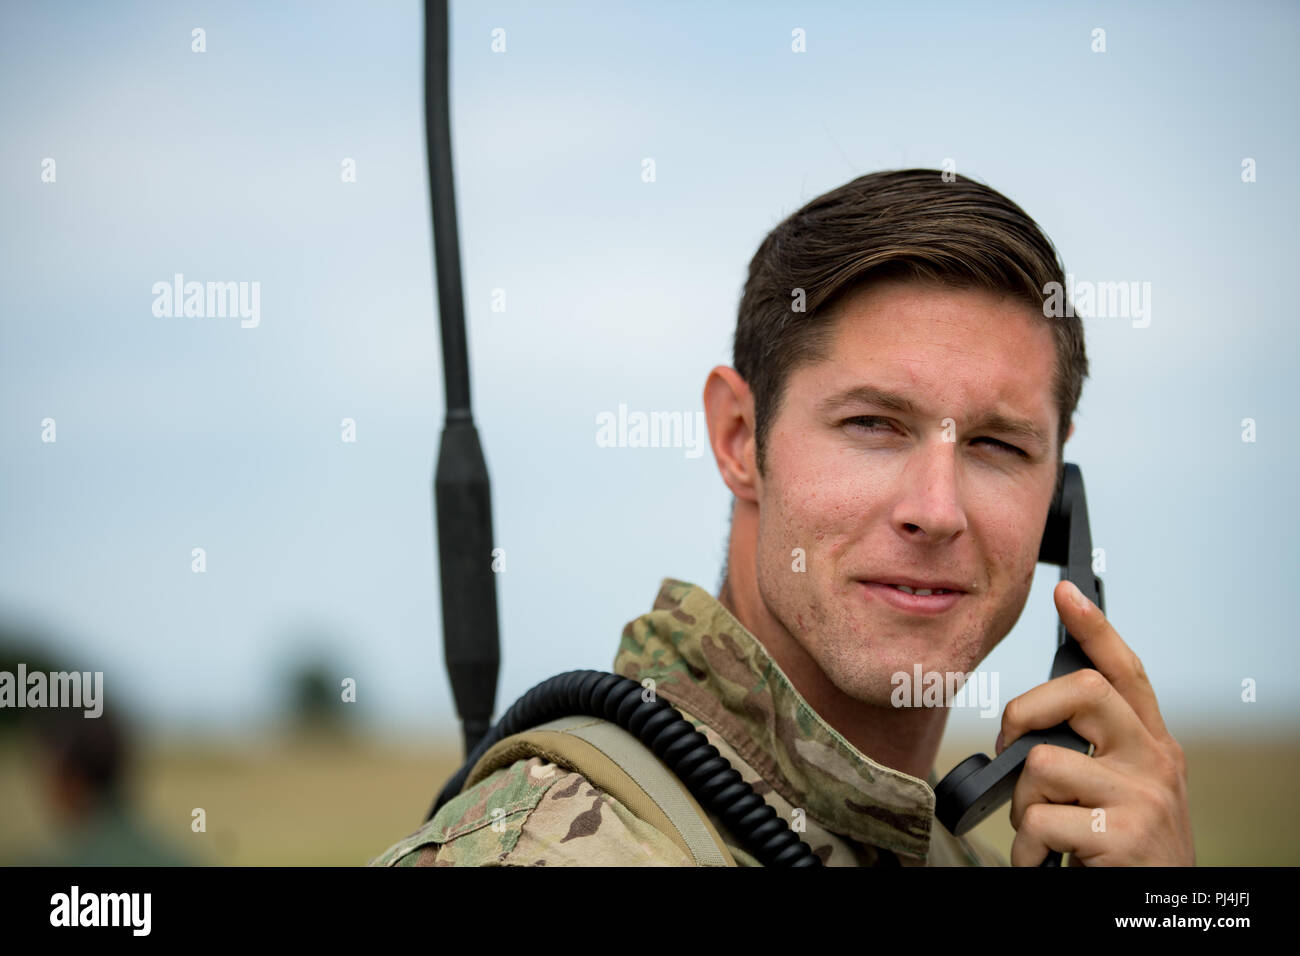 U.S. Air Force Tech. Sgt. Craig Reinwald, 435th Contingency Response Squadron contingency air traffic controller, listens to his radio at Boboc Air Base, Romania, Aug. 23, 2018. Reinwald and his team provided ground support for the 37th Airlift Squadron pilots dropping Romanian air force paratroopers out of C-130J Super Hercules aircraft as part of exercise Carpathian Summer 2018. (U.S. Air Force photo by Senior Airman Devin Boyer) Stock Photo